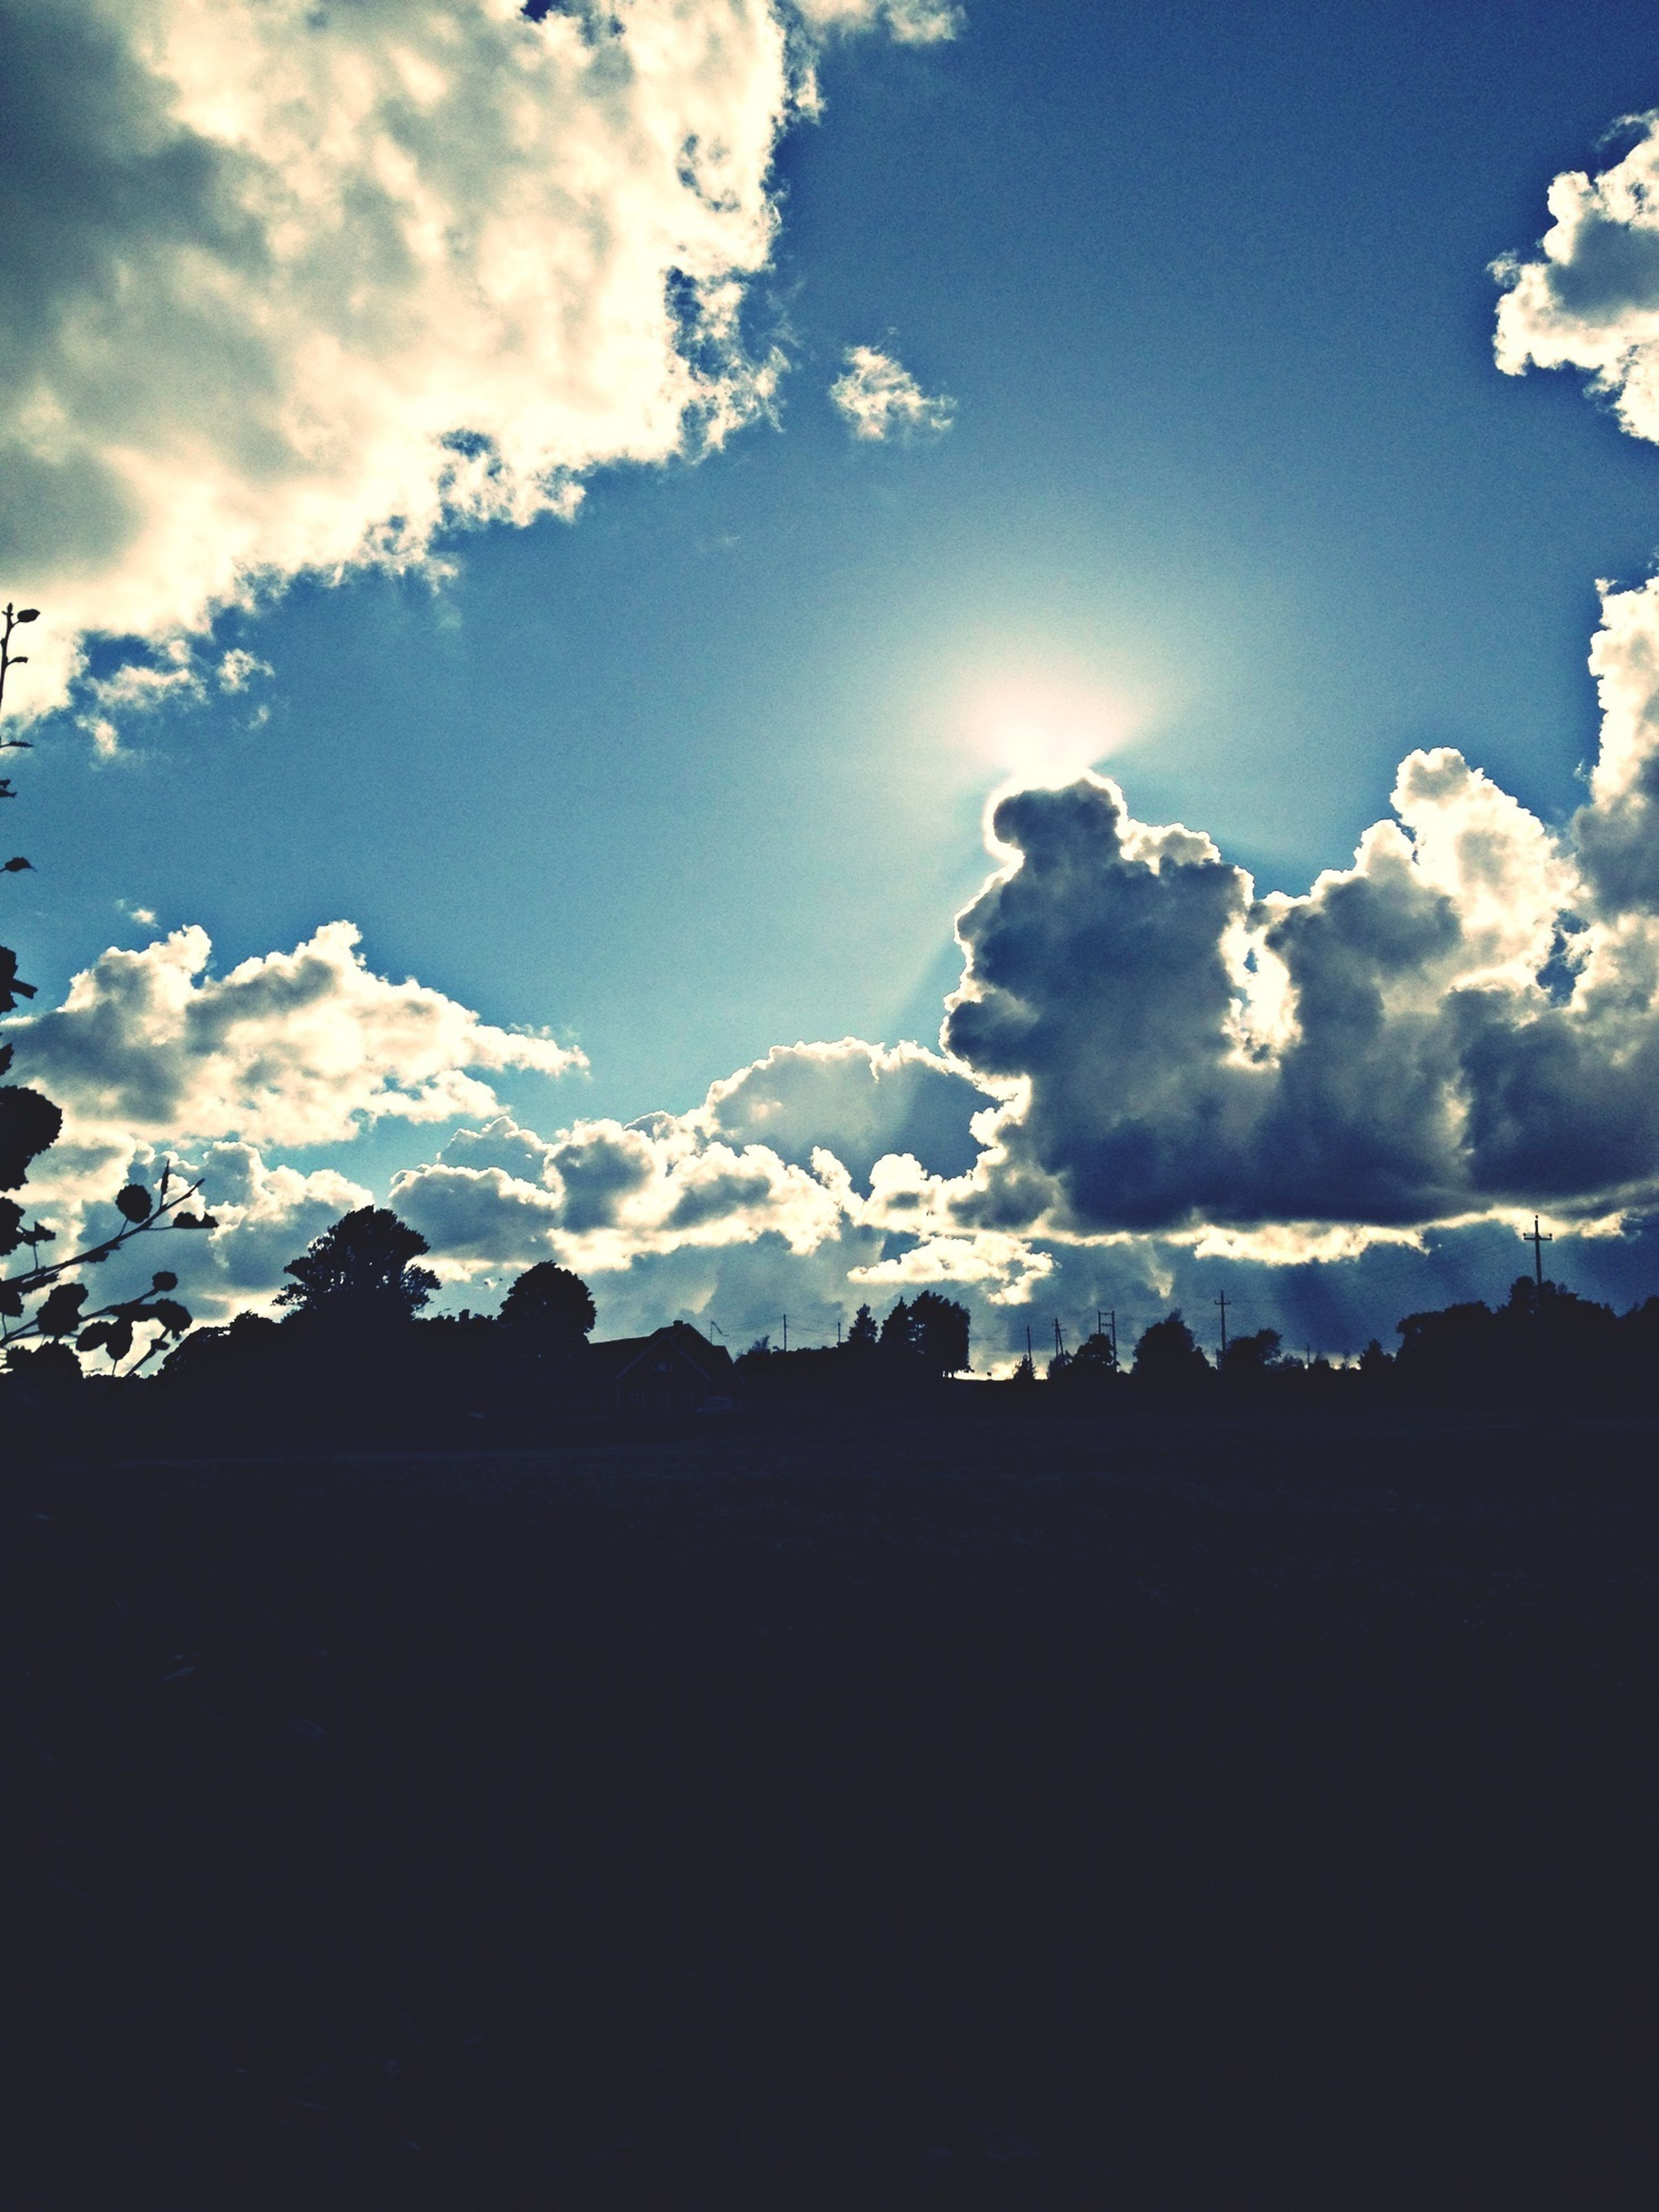 sky, cloud - sky, blue, silhouette, cloud, tranquility, tranquil scene, scenics, beauty in nature, nature, cloudy, landscape, low angle view, sunlight, outdoors, idyllic, tree, no people, field, dusk